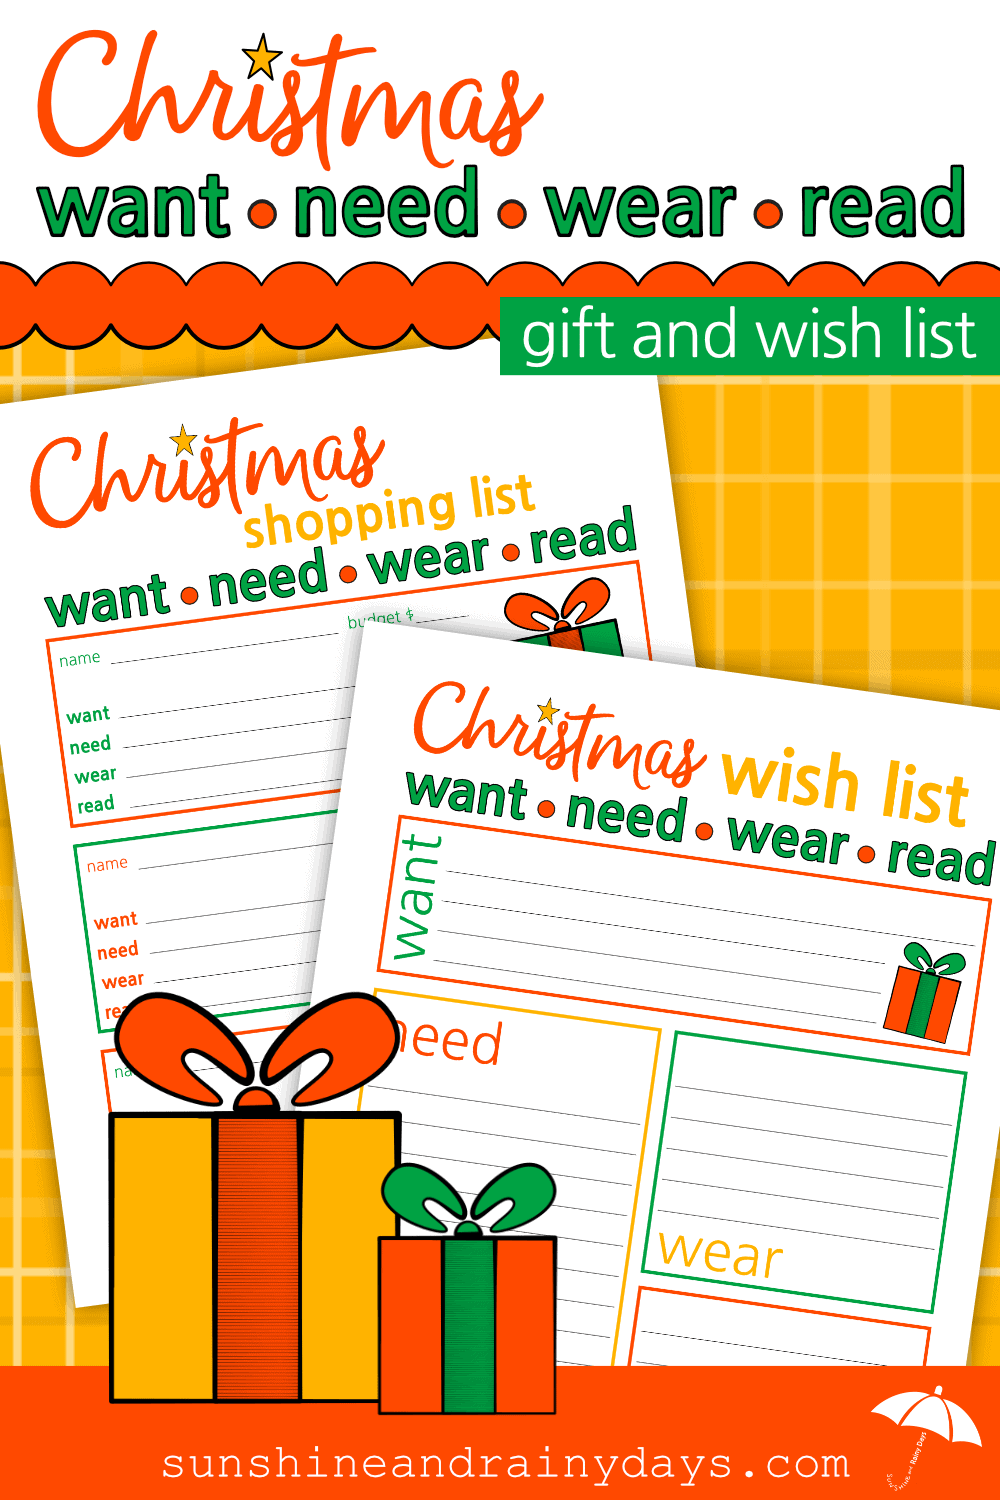 Christmas Want, Need, Wear, and Read Gift List Printables